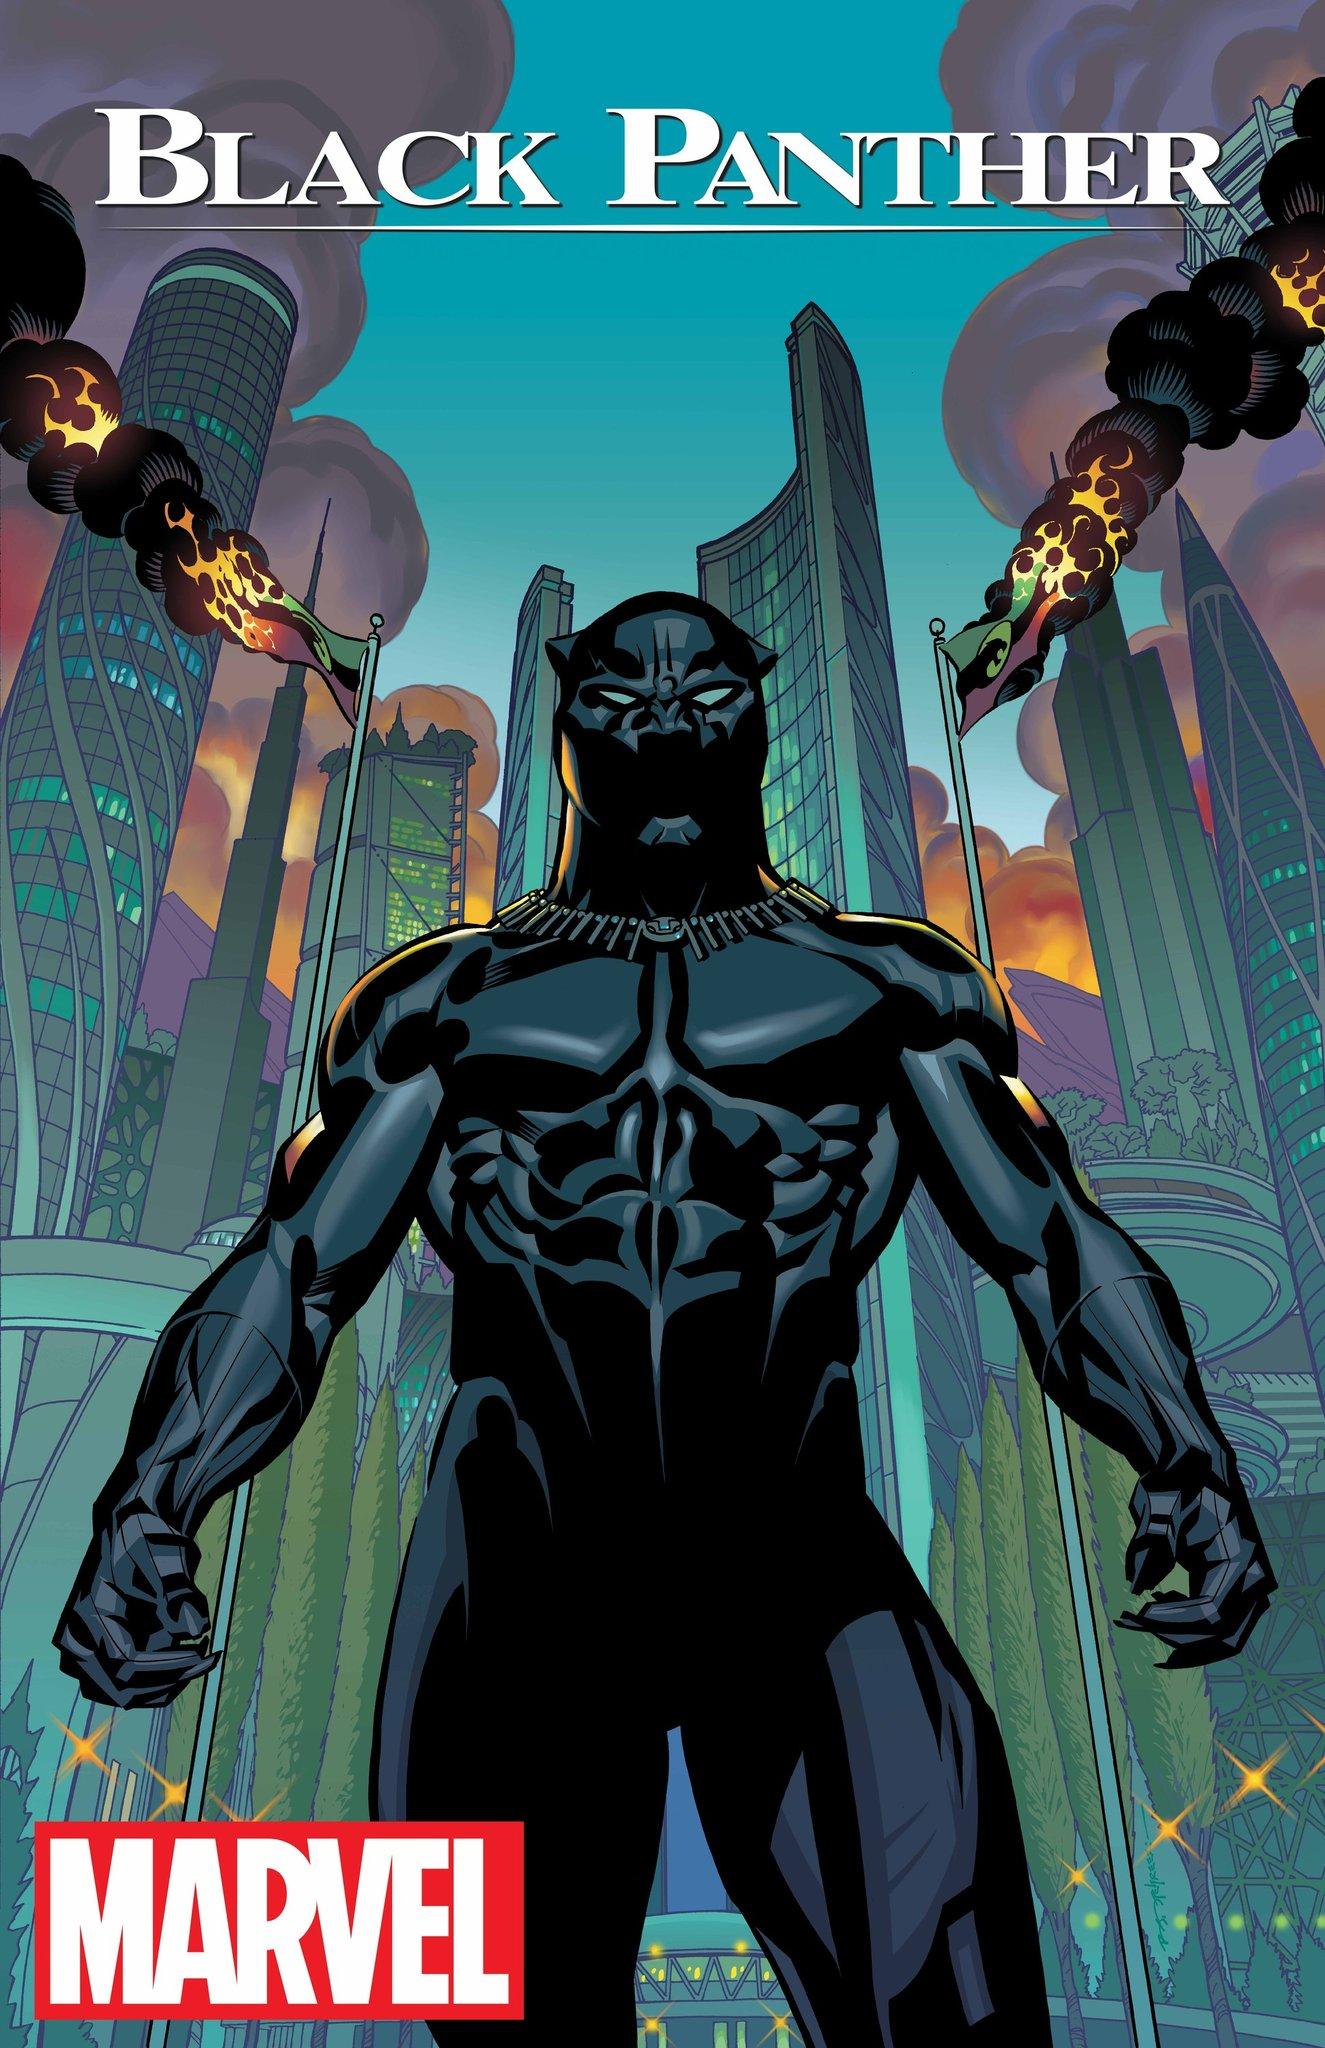 The cover to Coates's Black Panther (Marvel)